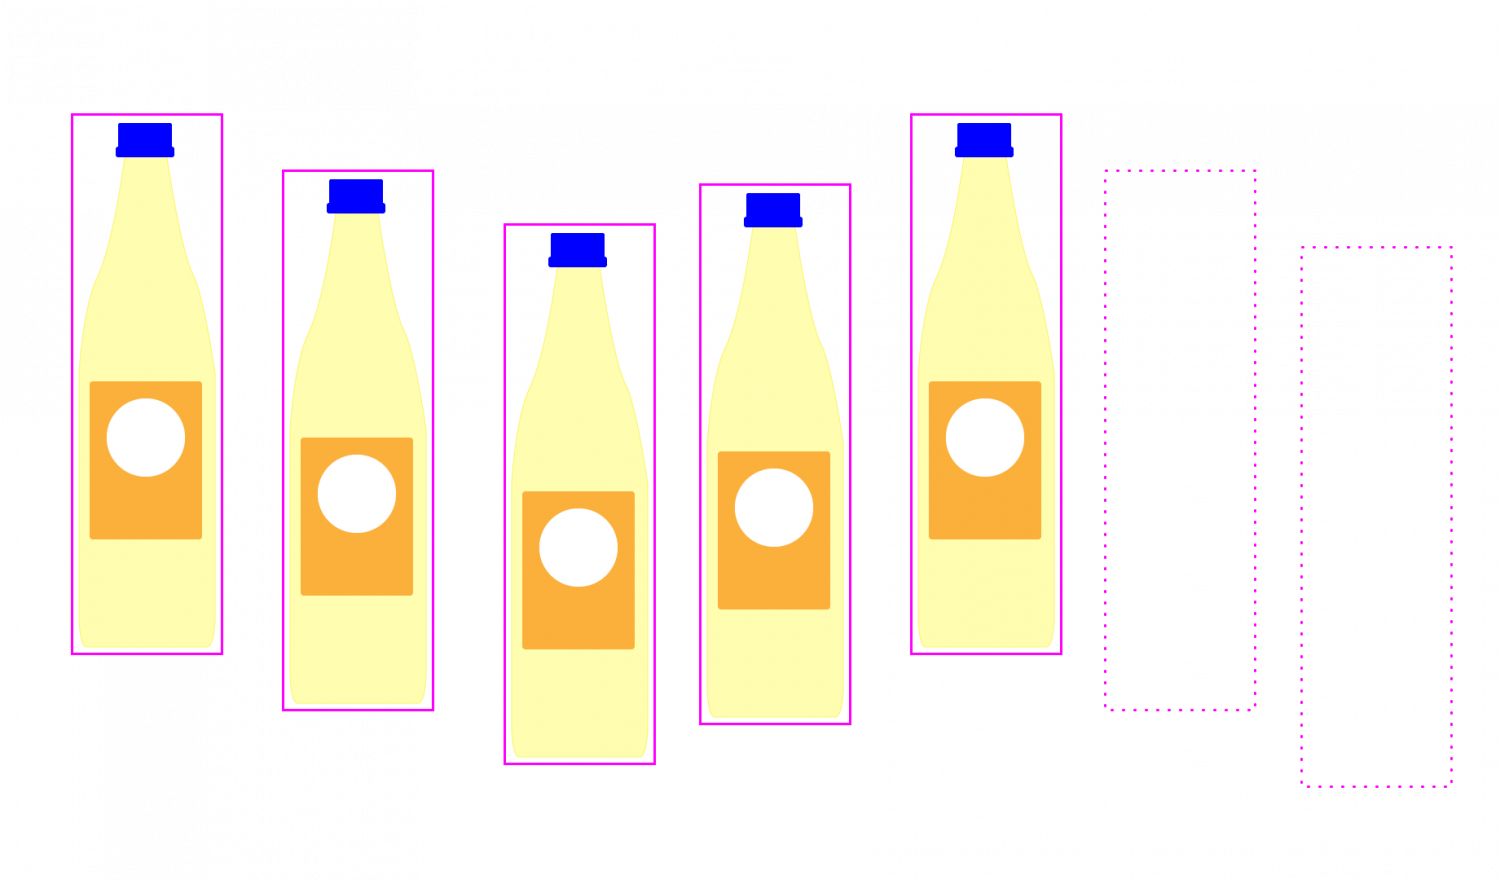 A bottle with an detection outline moving from left to right